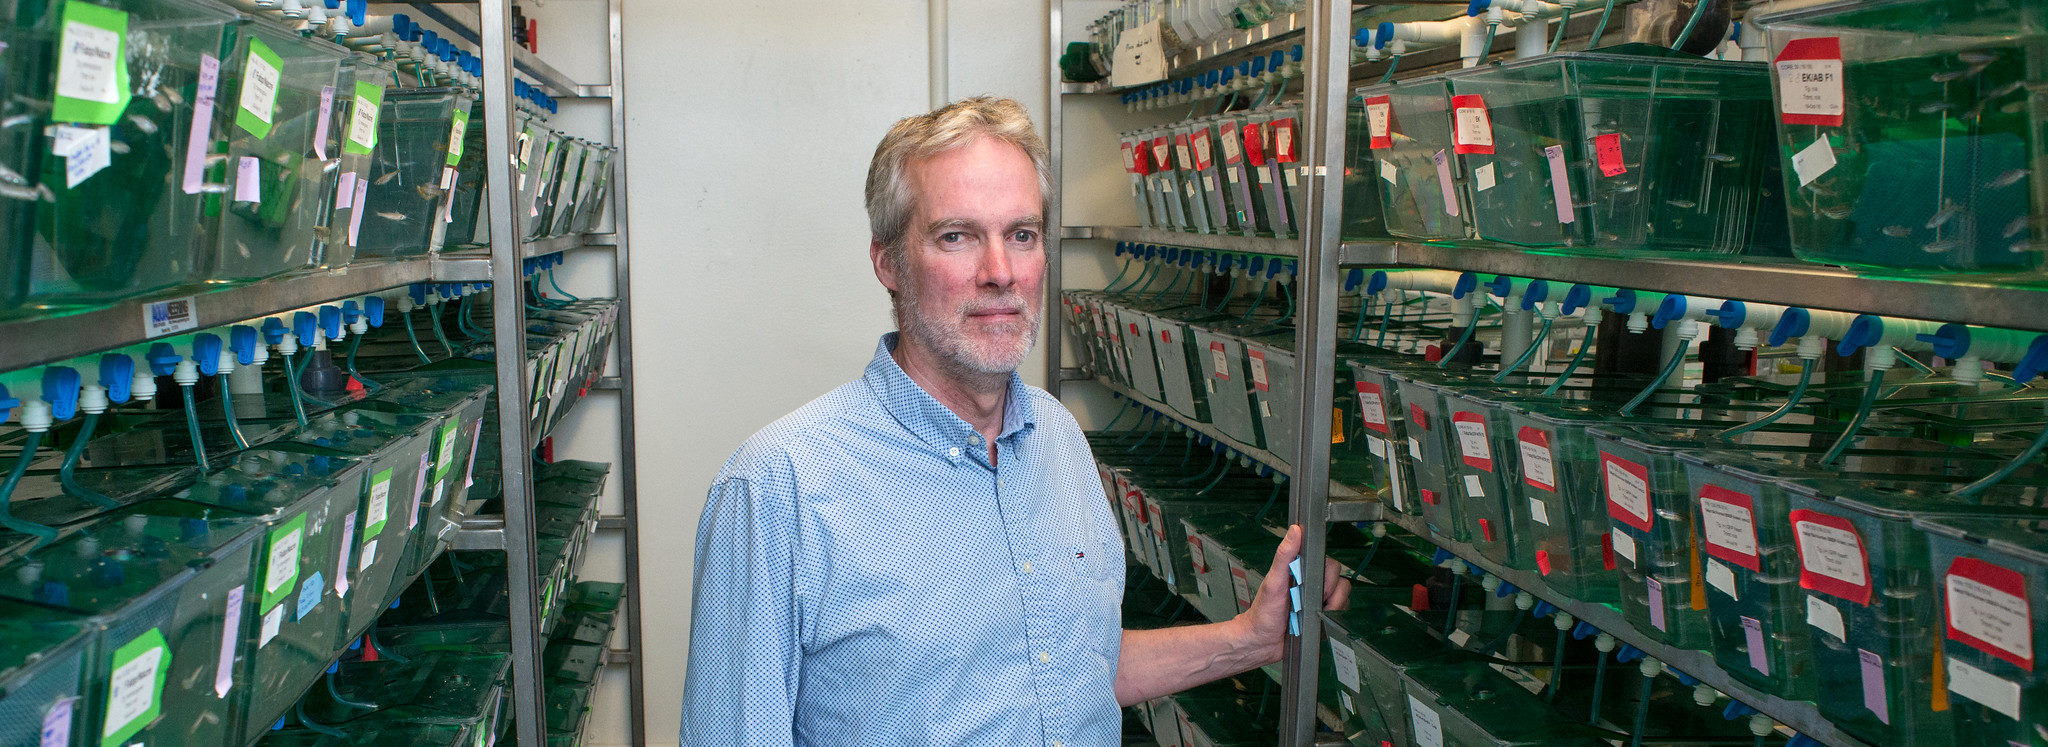 MDI Biological Laboratory Scientist Identifies Process Critical to Kidney Function